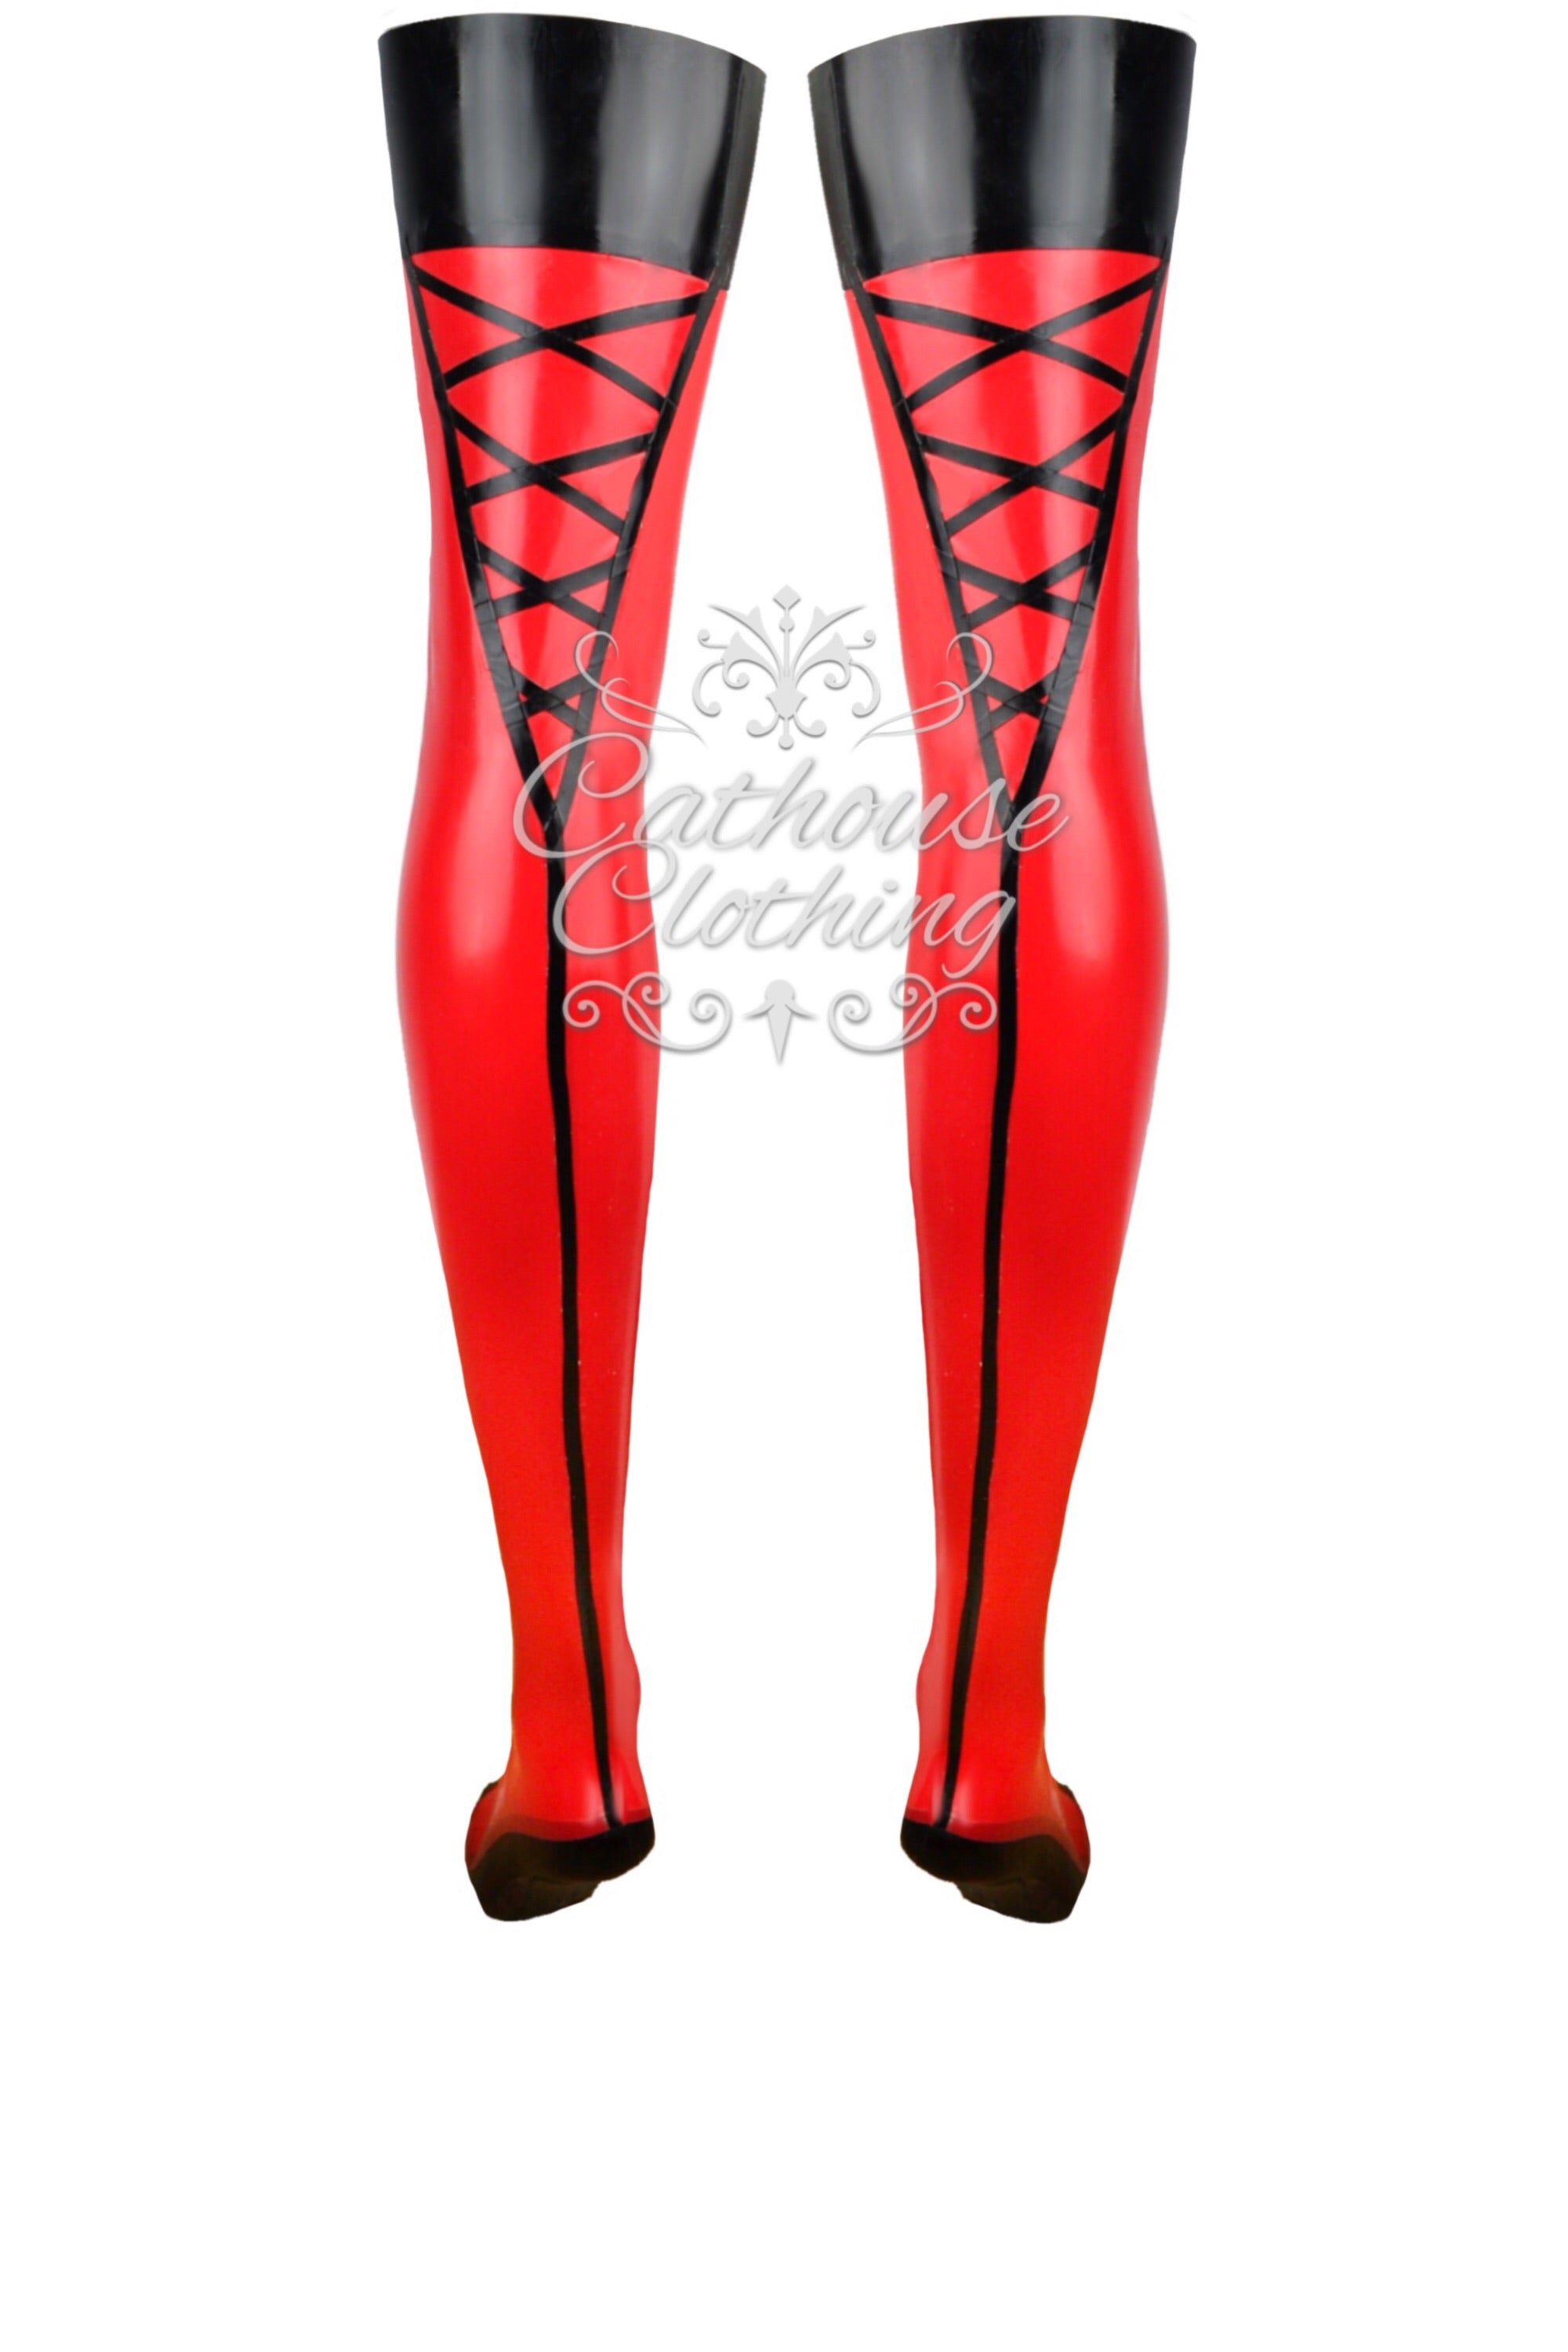 Ultra-fine latex criss-cross stockings